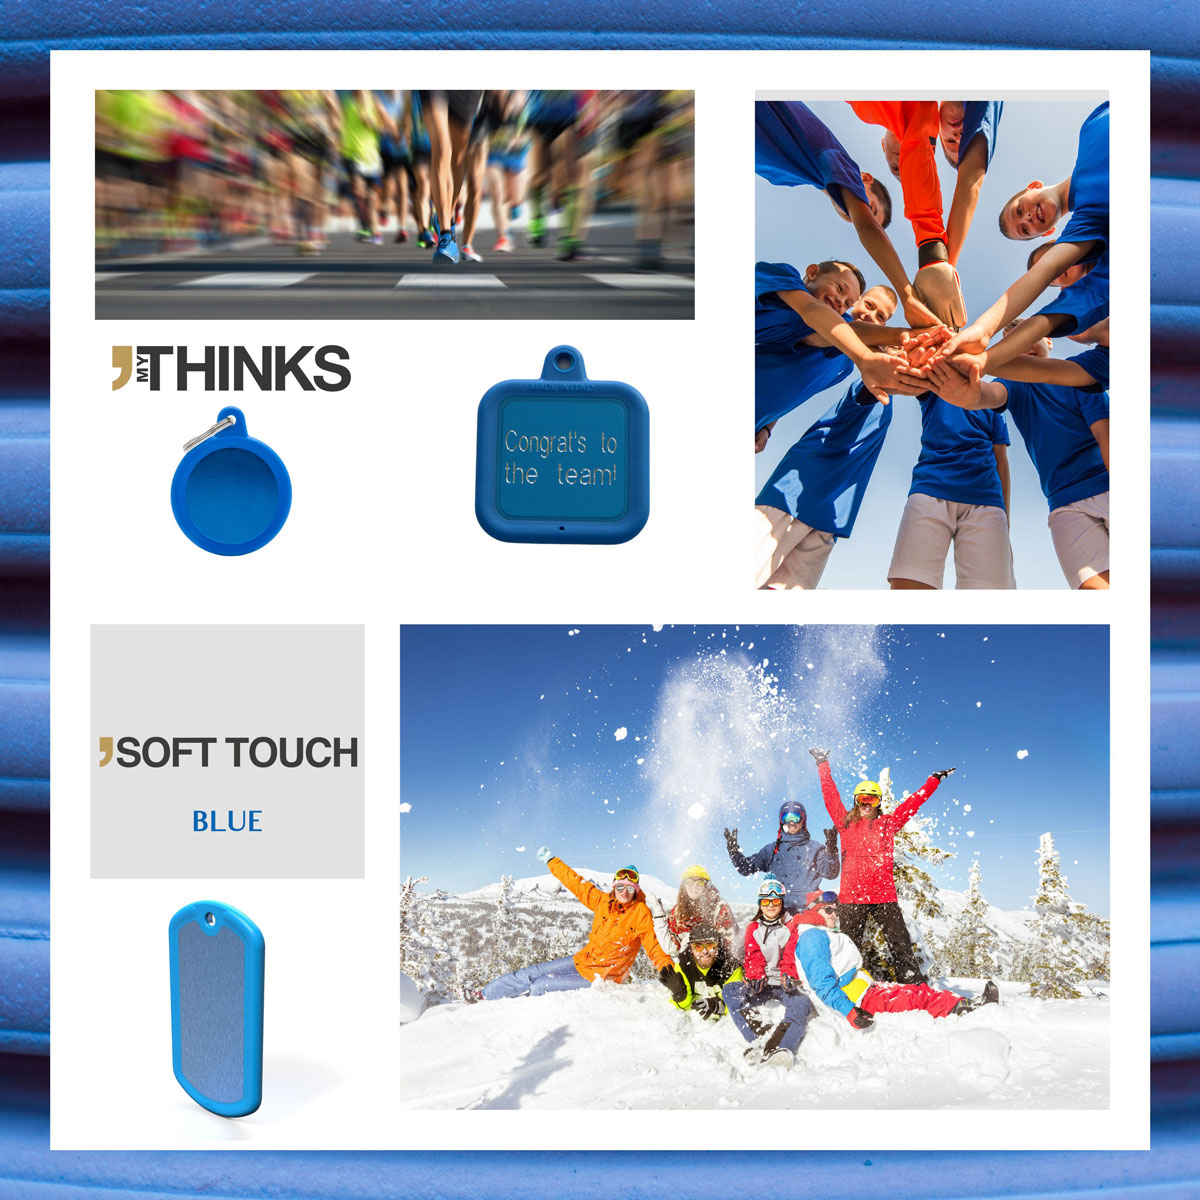 Mood board Soft touch collection gifts with blue rubber braid on blue anodized aluminum medal for the sport and vacation market